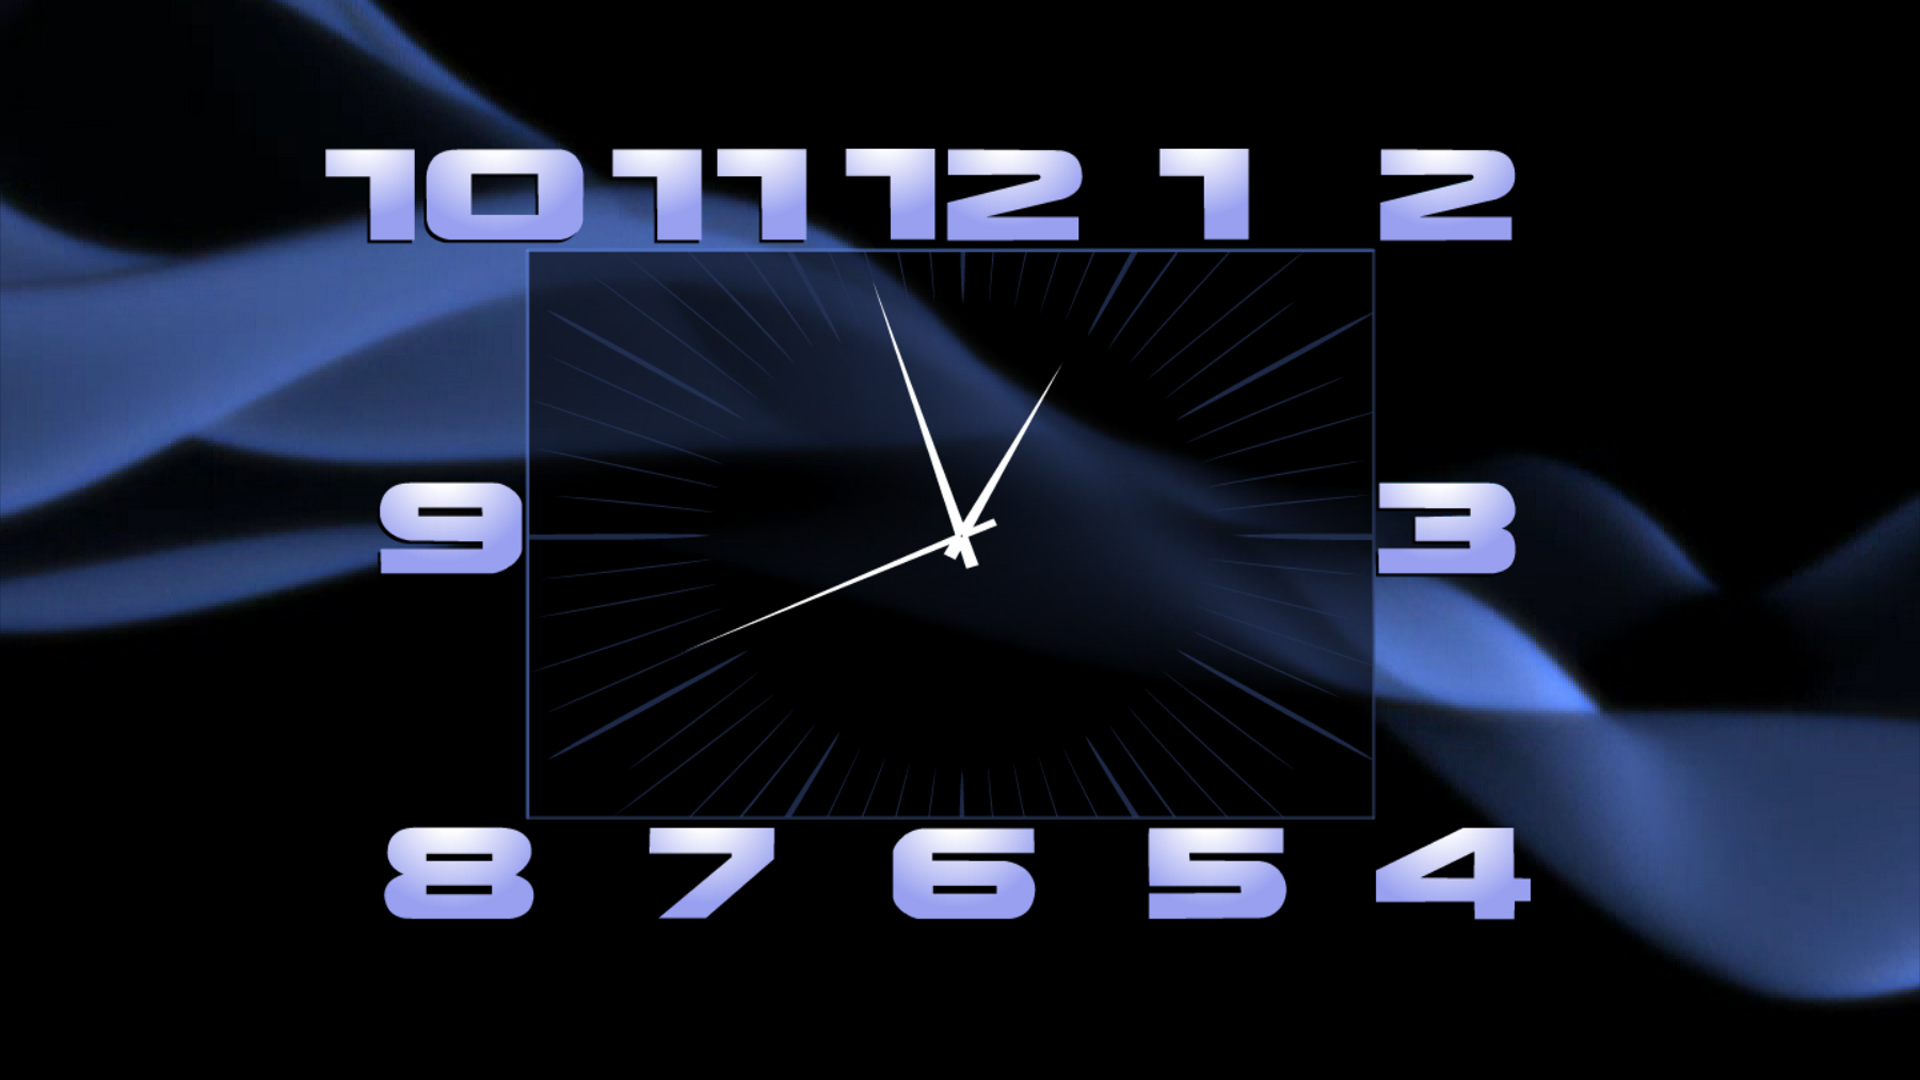 Windows 10 Classic Clock Screensaver ...